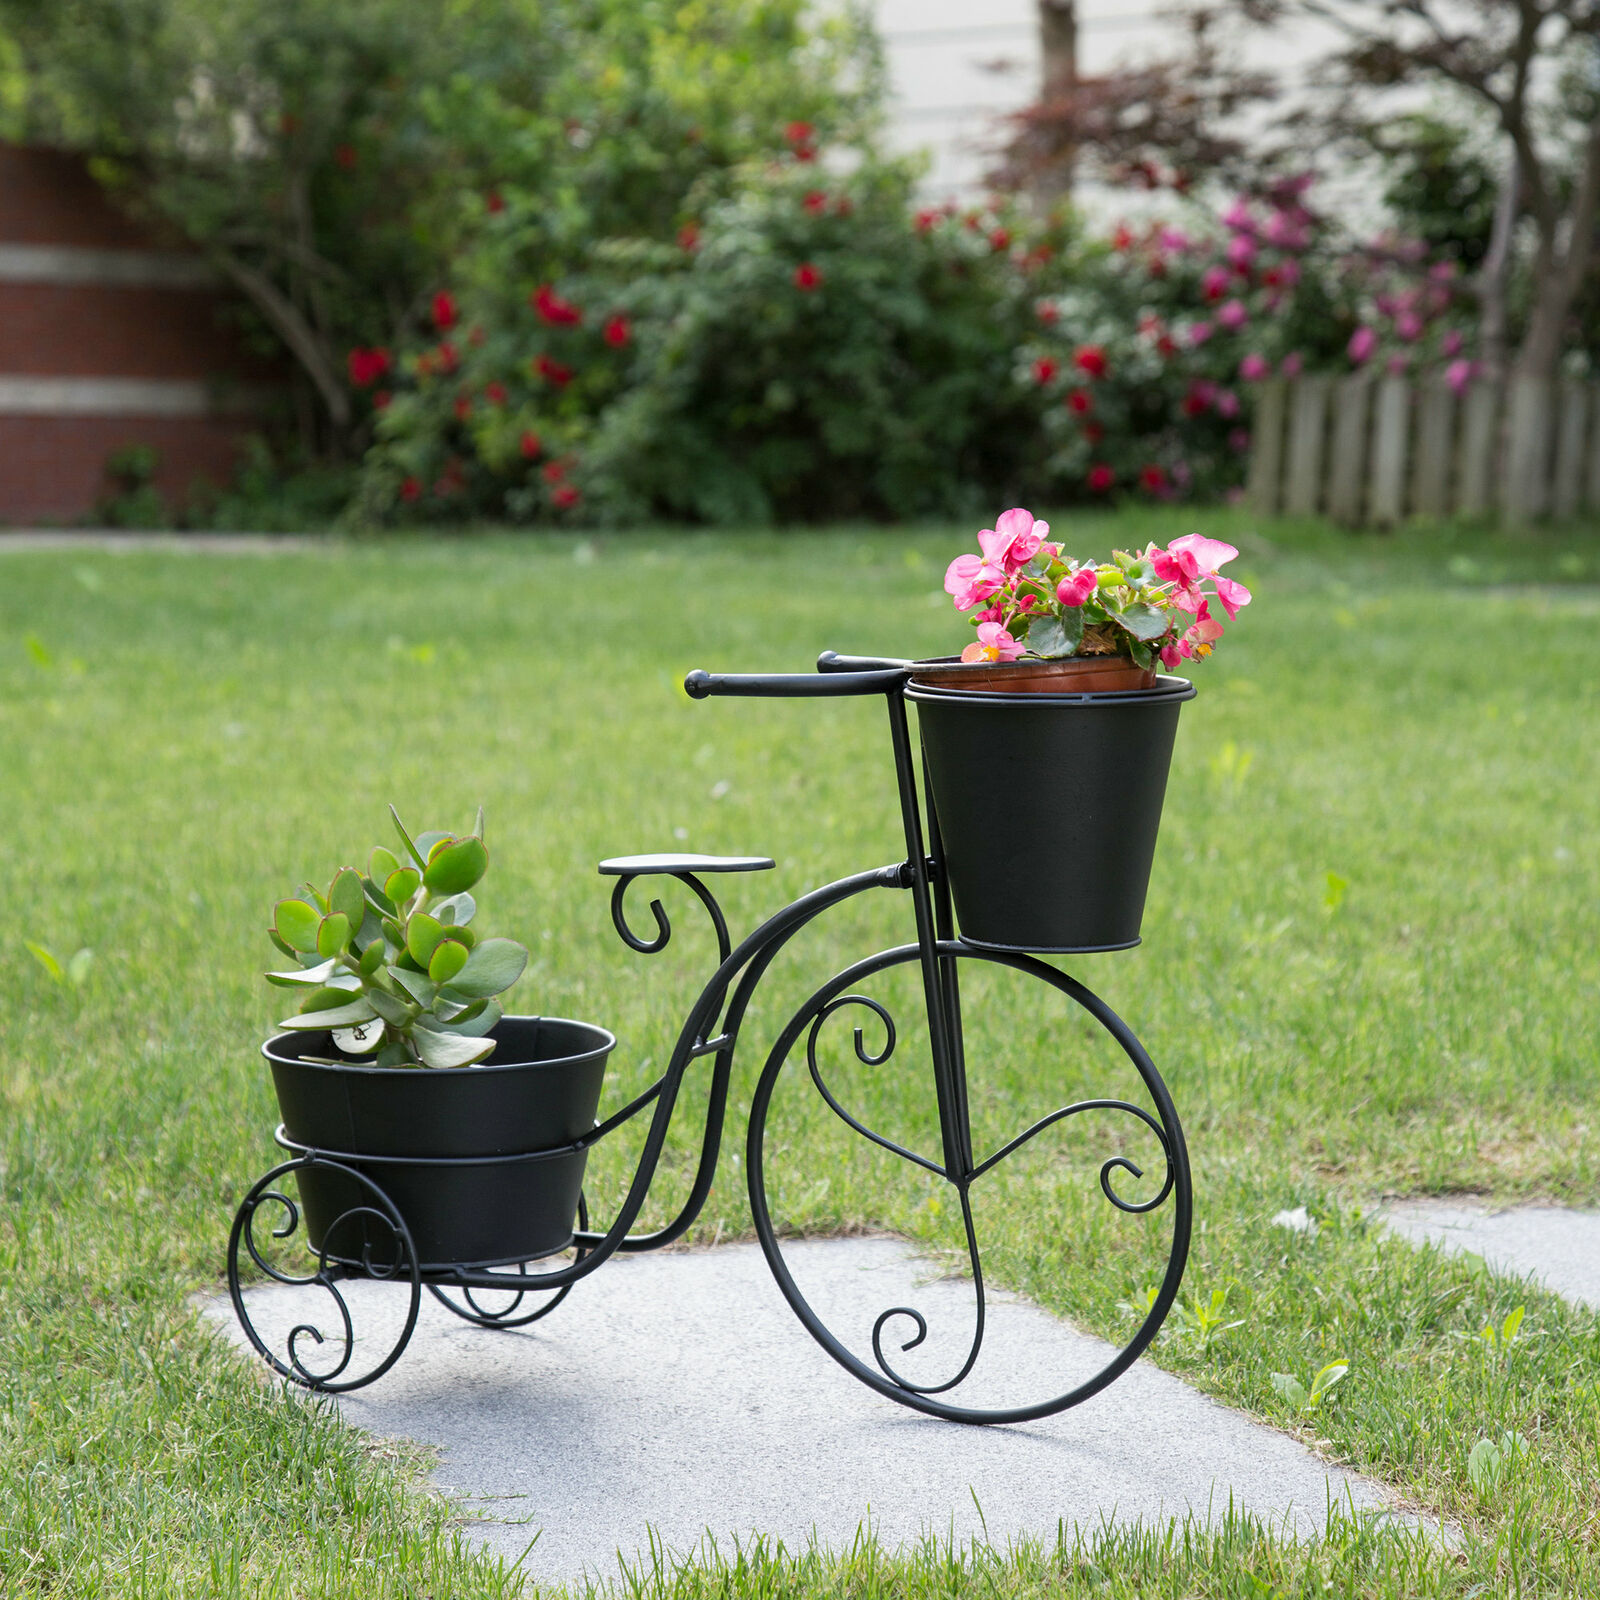 Bicycle Home Decor: Glitzhome Outdoor Indoor Mini Garden Bicycle Planter Home